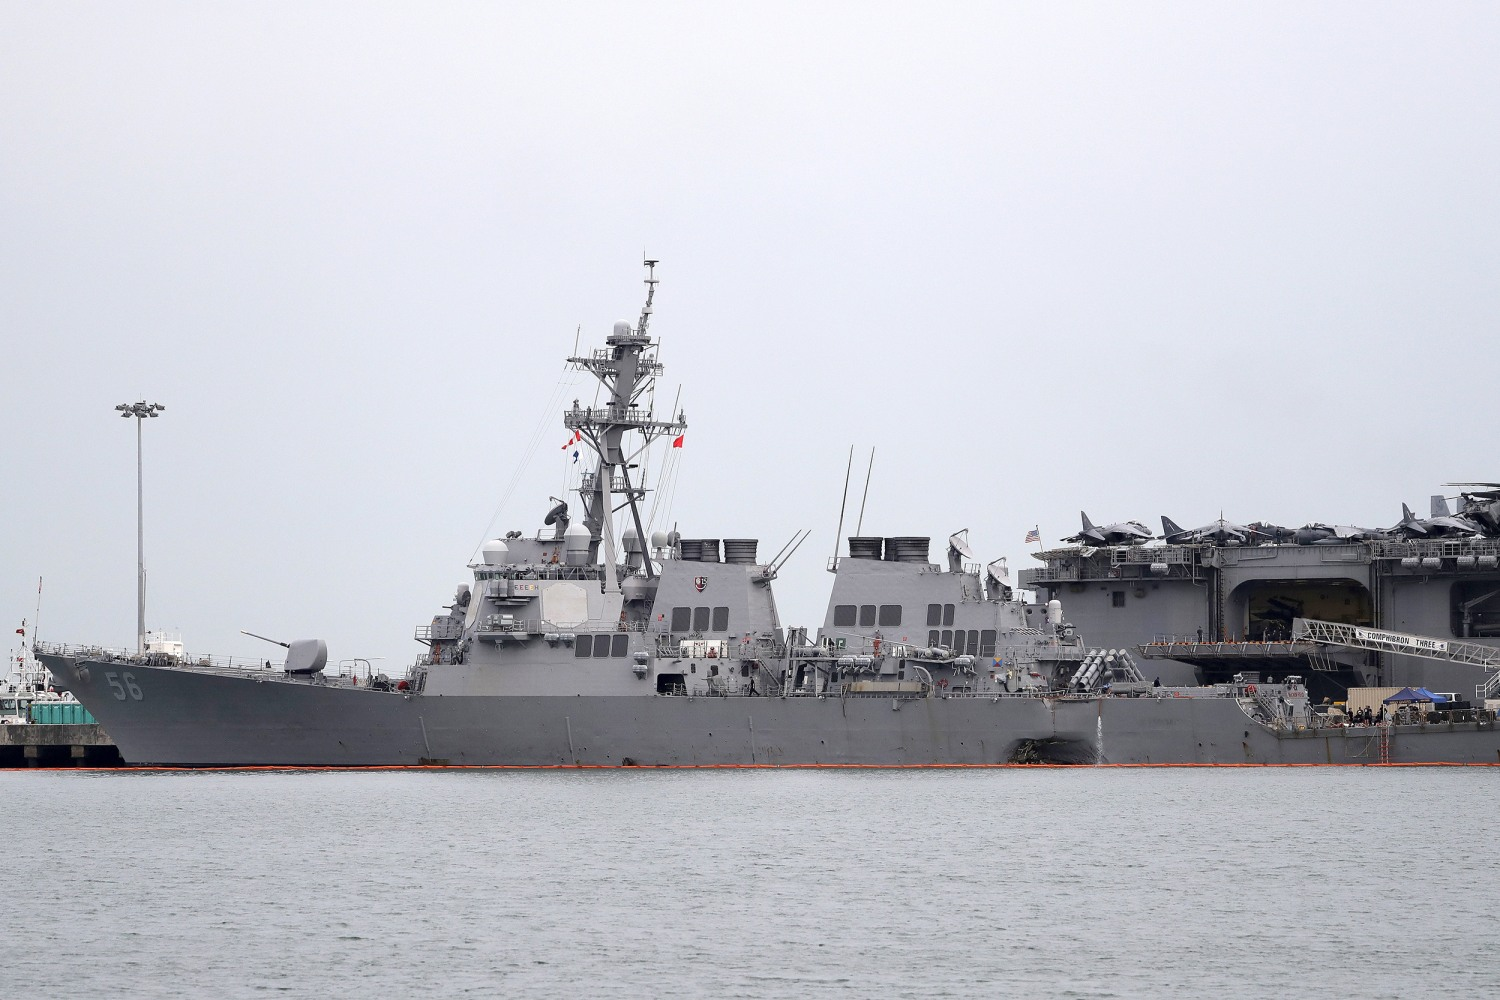 US Navy to relieve commander after collisions in Asia